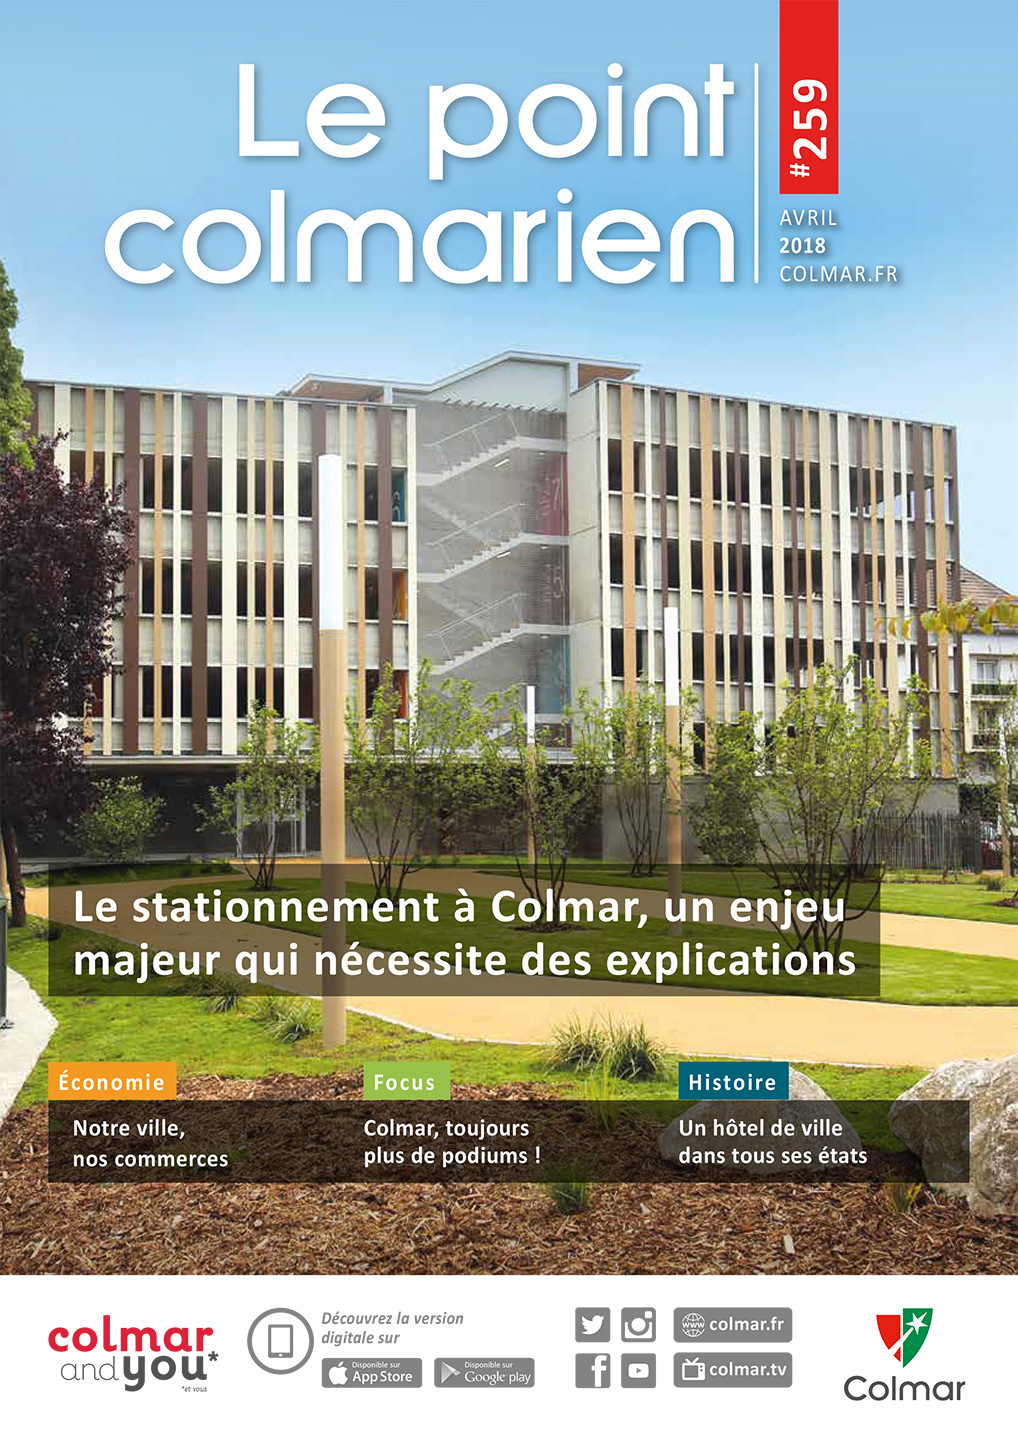 Le point colmarien n°259 - avril 2018